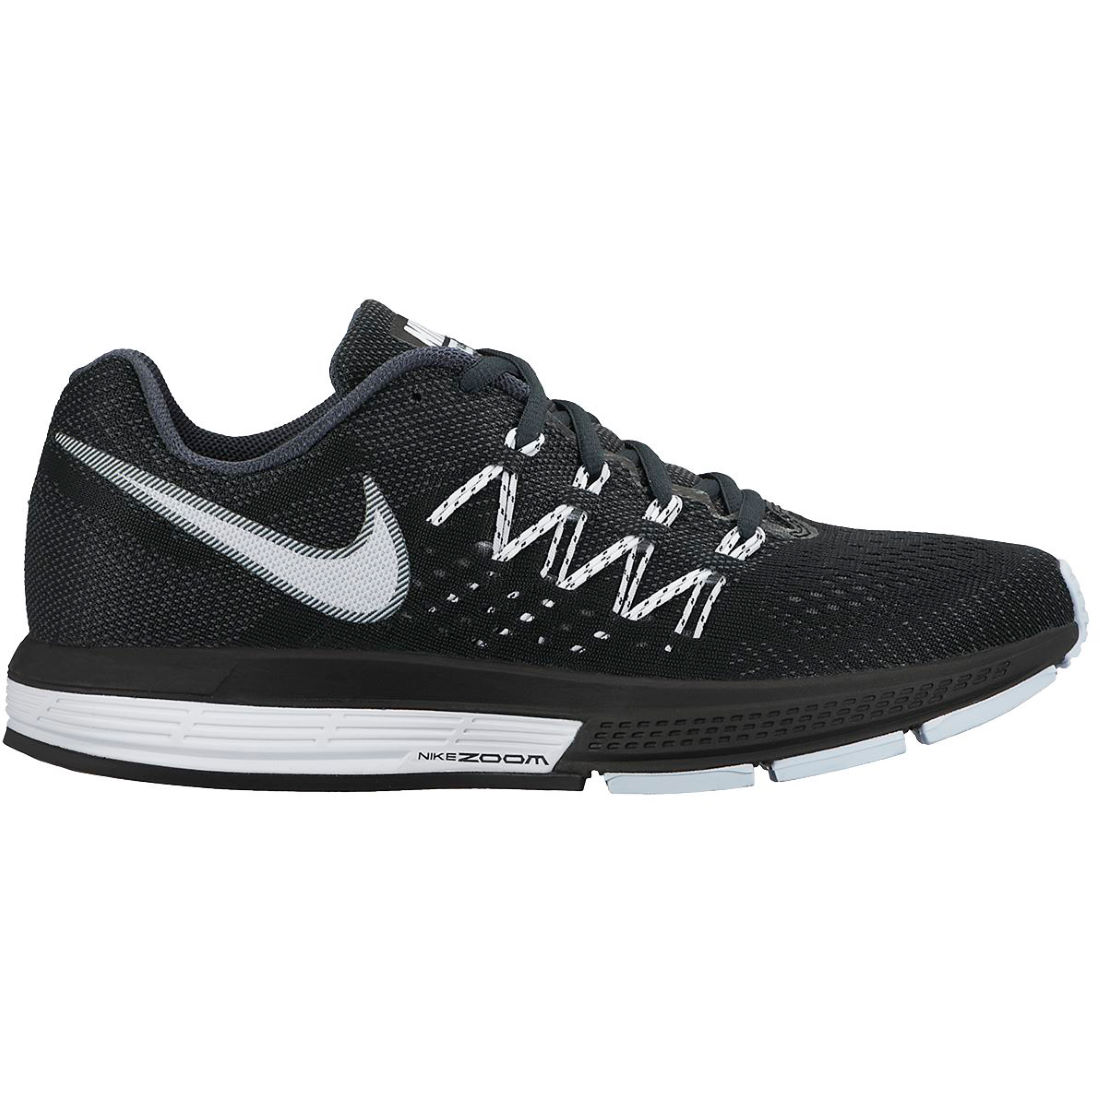 Salvaje esconder No hagas  Wiggle | Nike Women's Air Zoom Vomero 10 Shoes (HO15) | Cushion ...